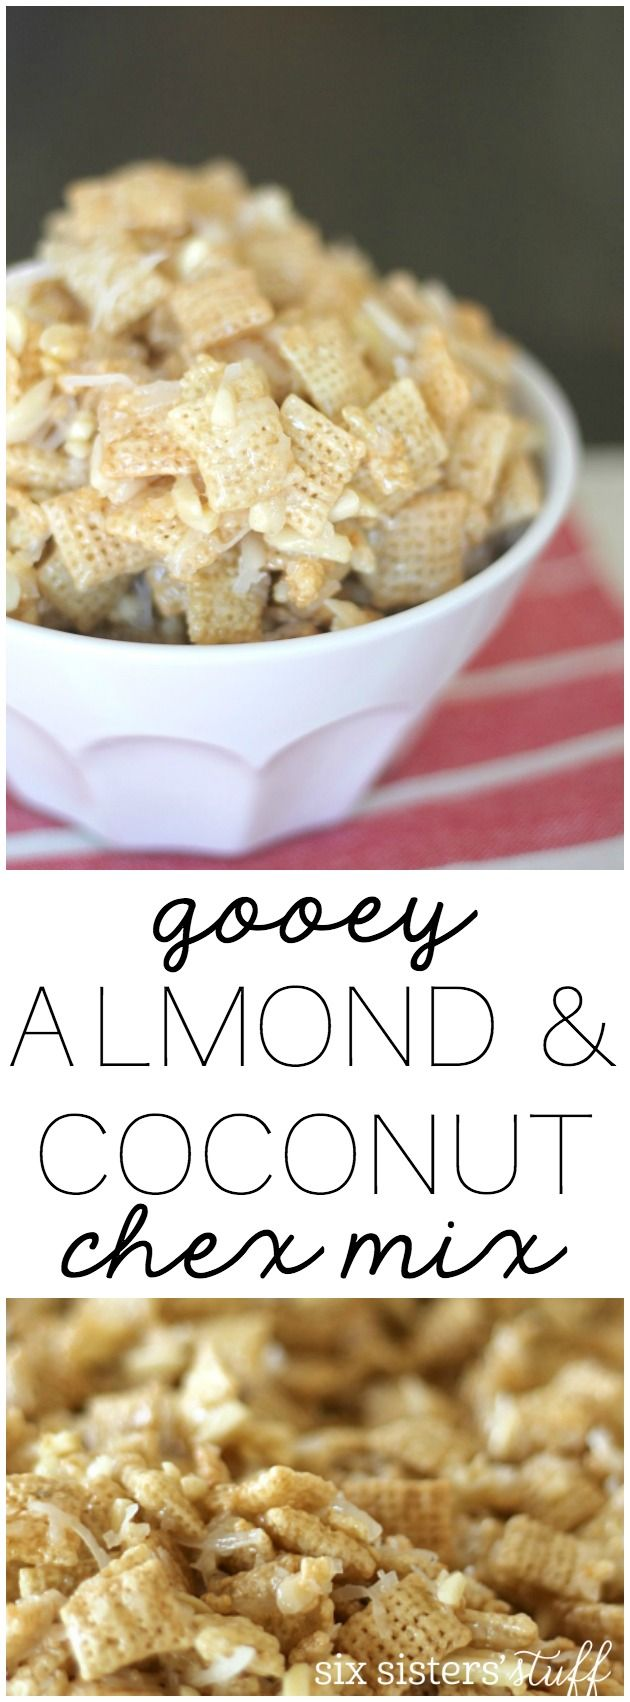 Gooey Almond and Coconut Chex Mix from SixSistersStuff.com. Perfect for holiday parties or neighbor gifts!